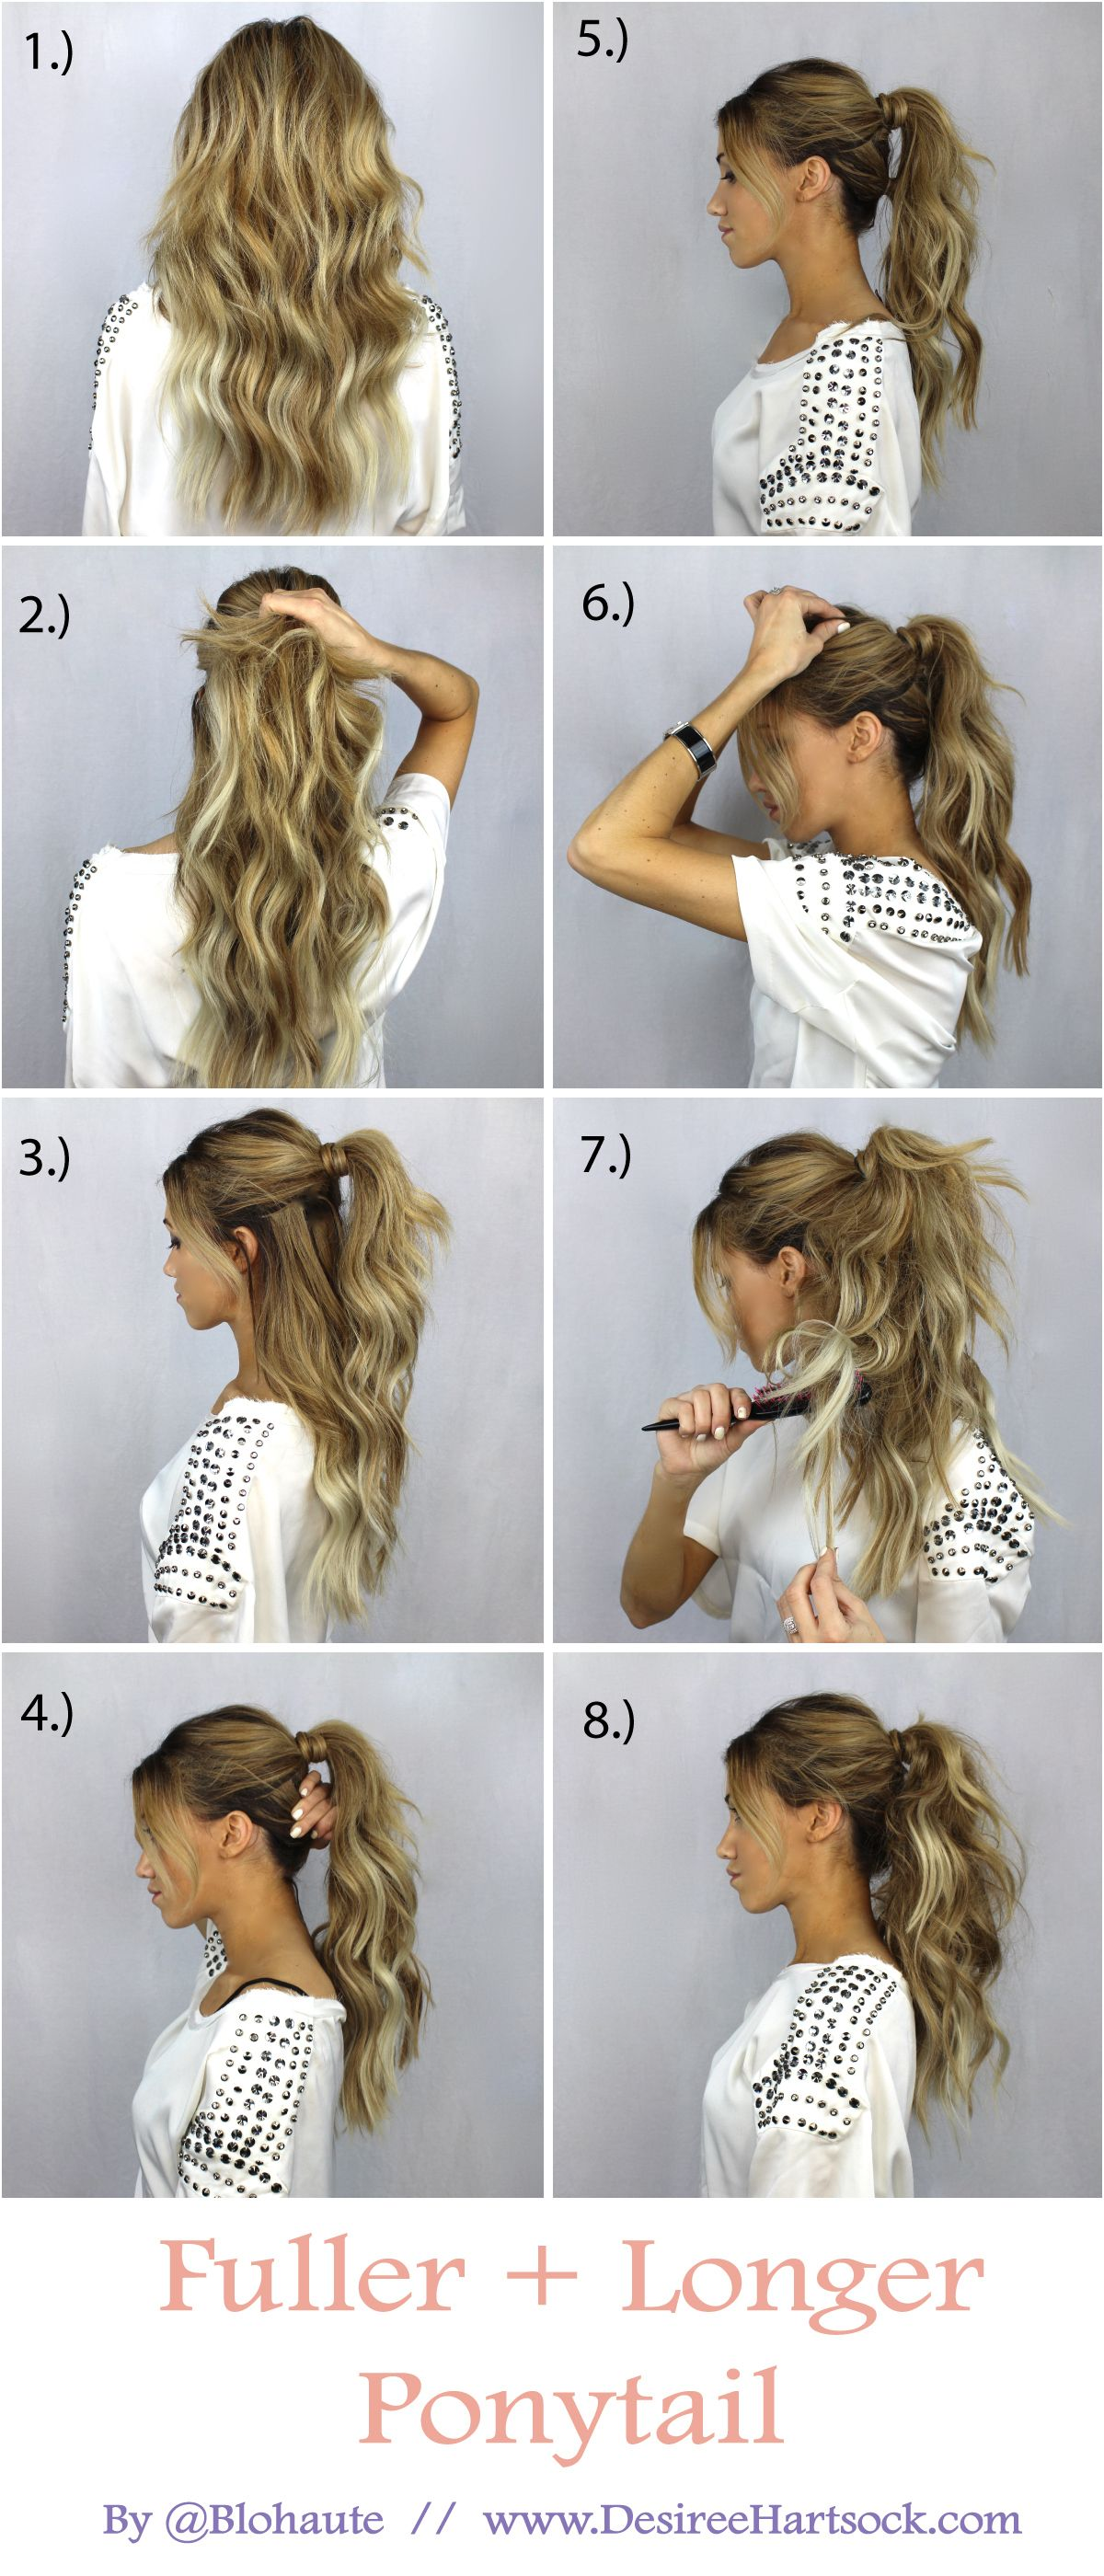 12 Original Easy Hairstyles For Long Thin Hair Style Easy Hairstyles Long Thin Hair Easy Hairstyles Quick